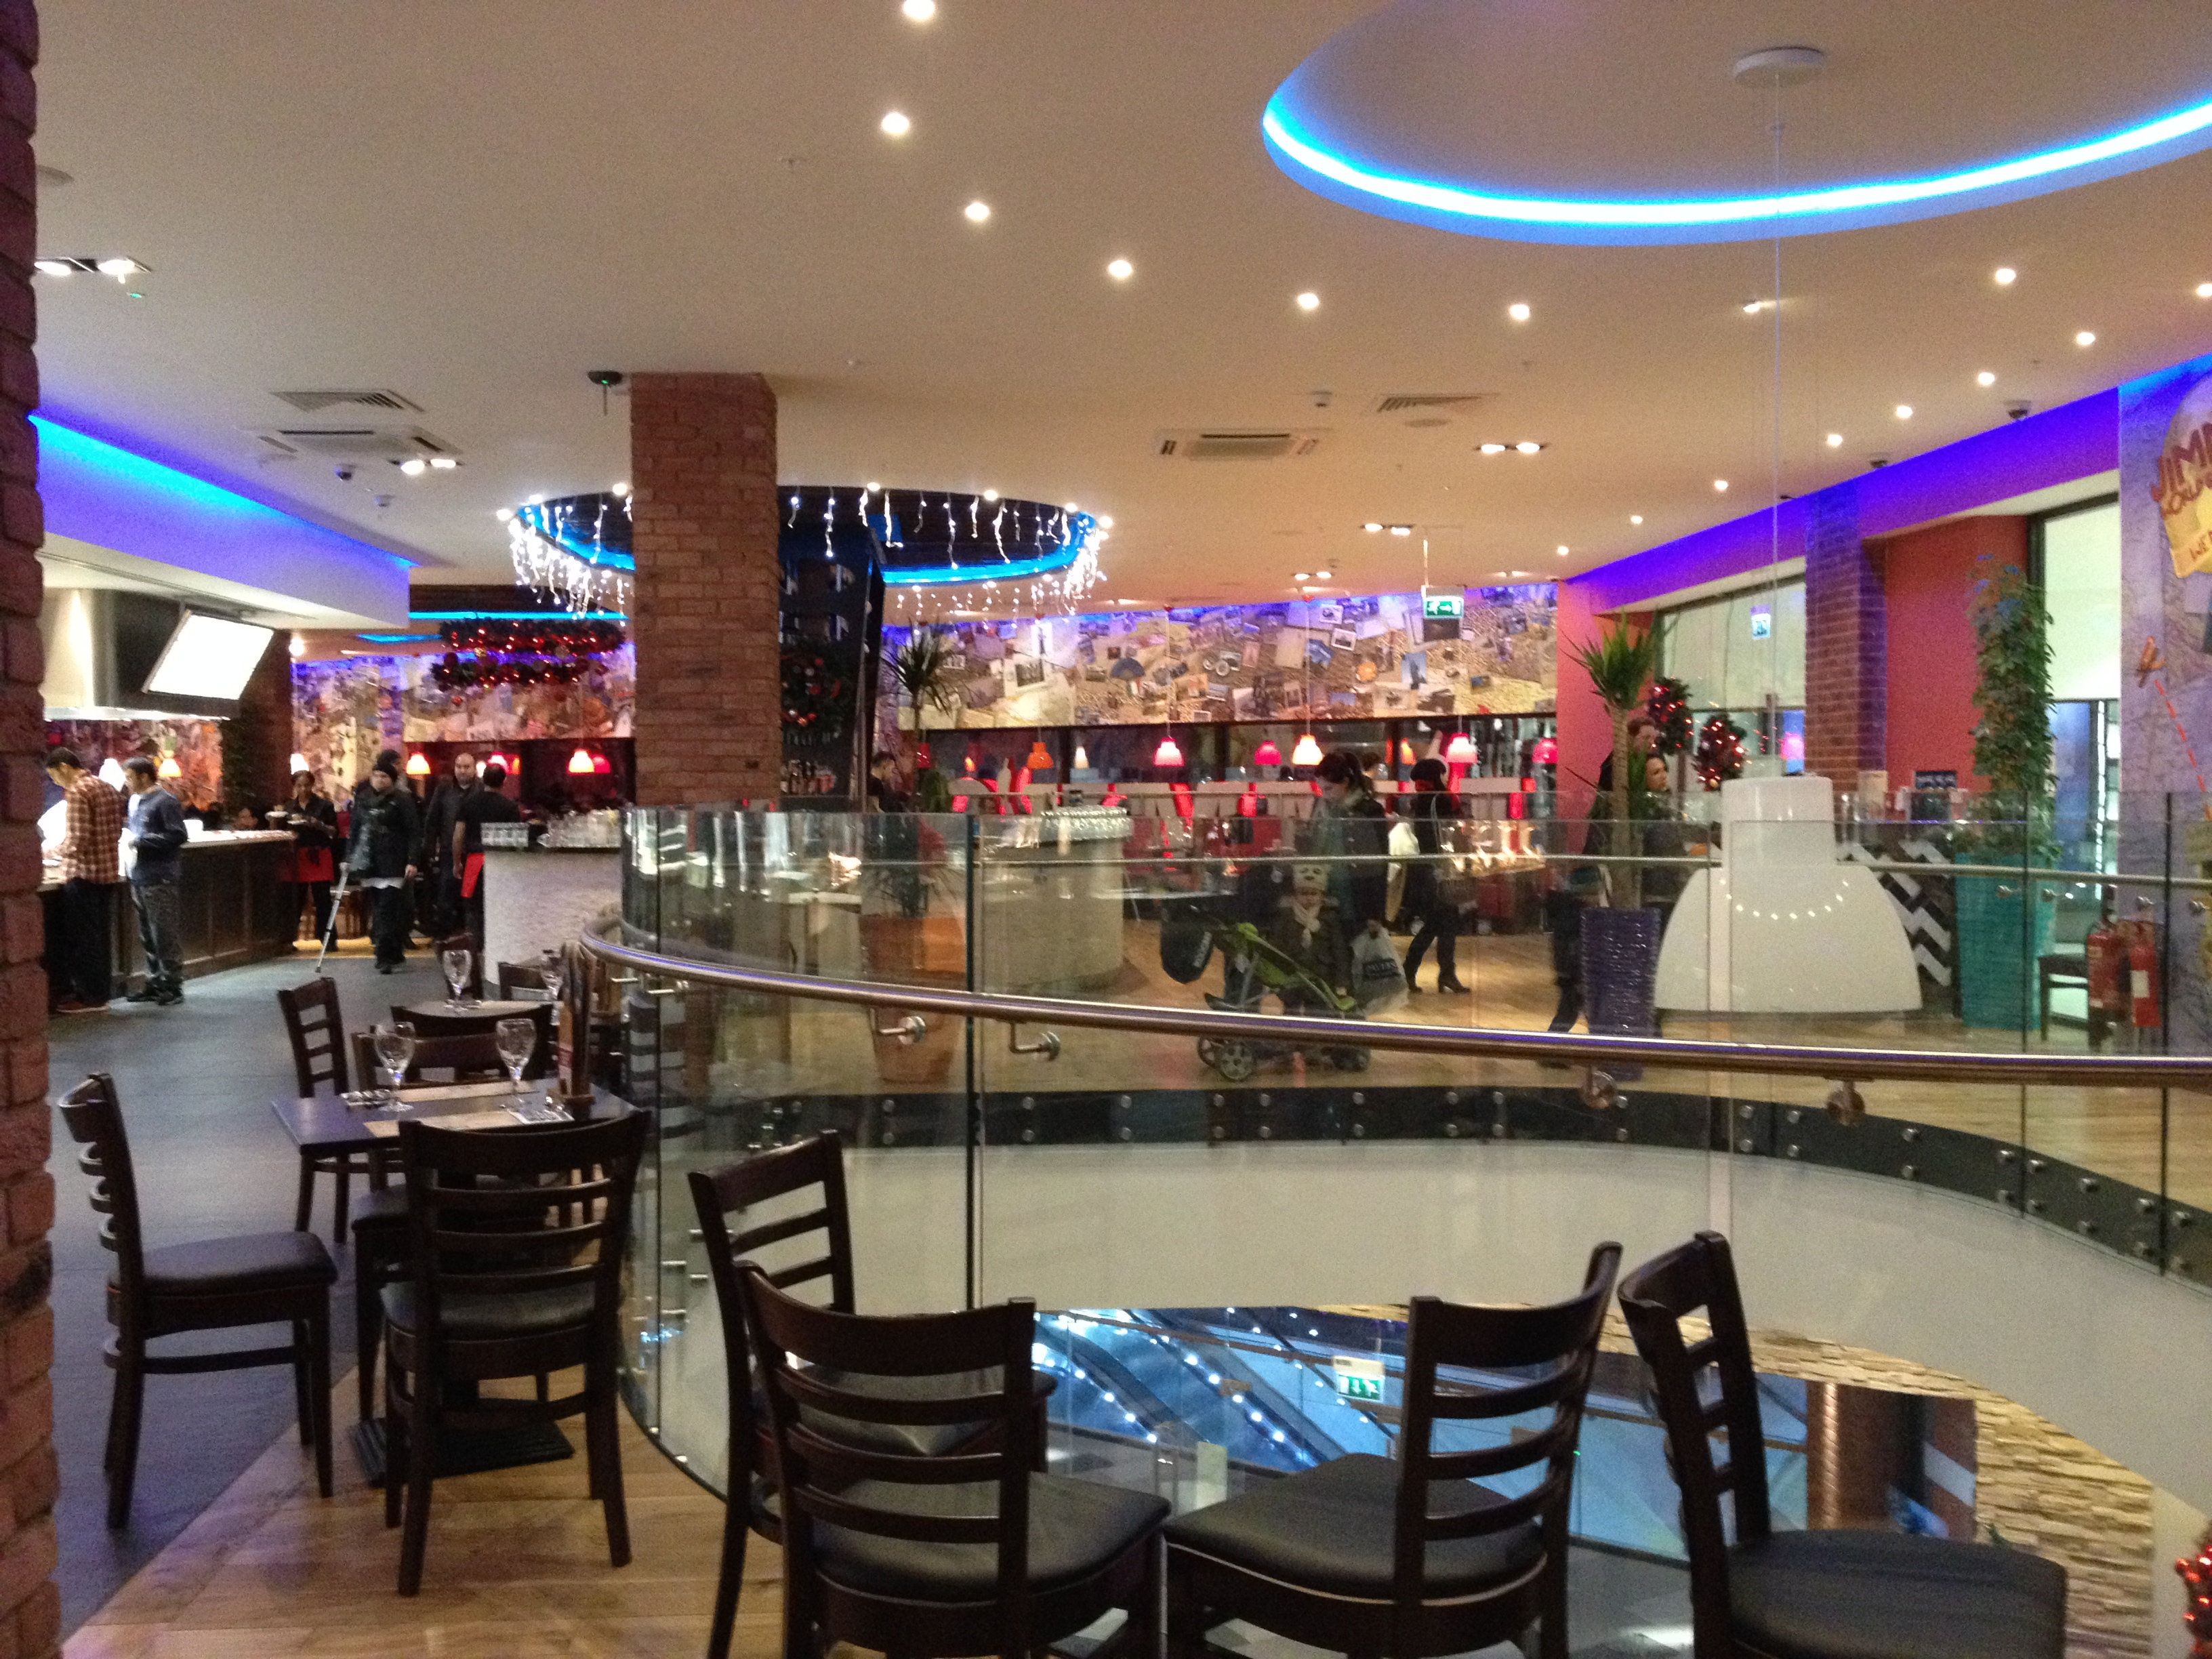 Chinese Buffet Restaurant In Wembley